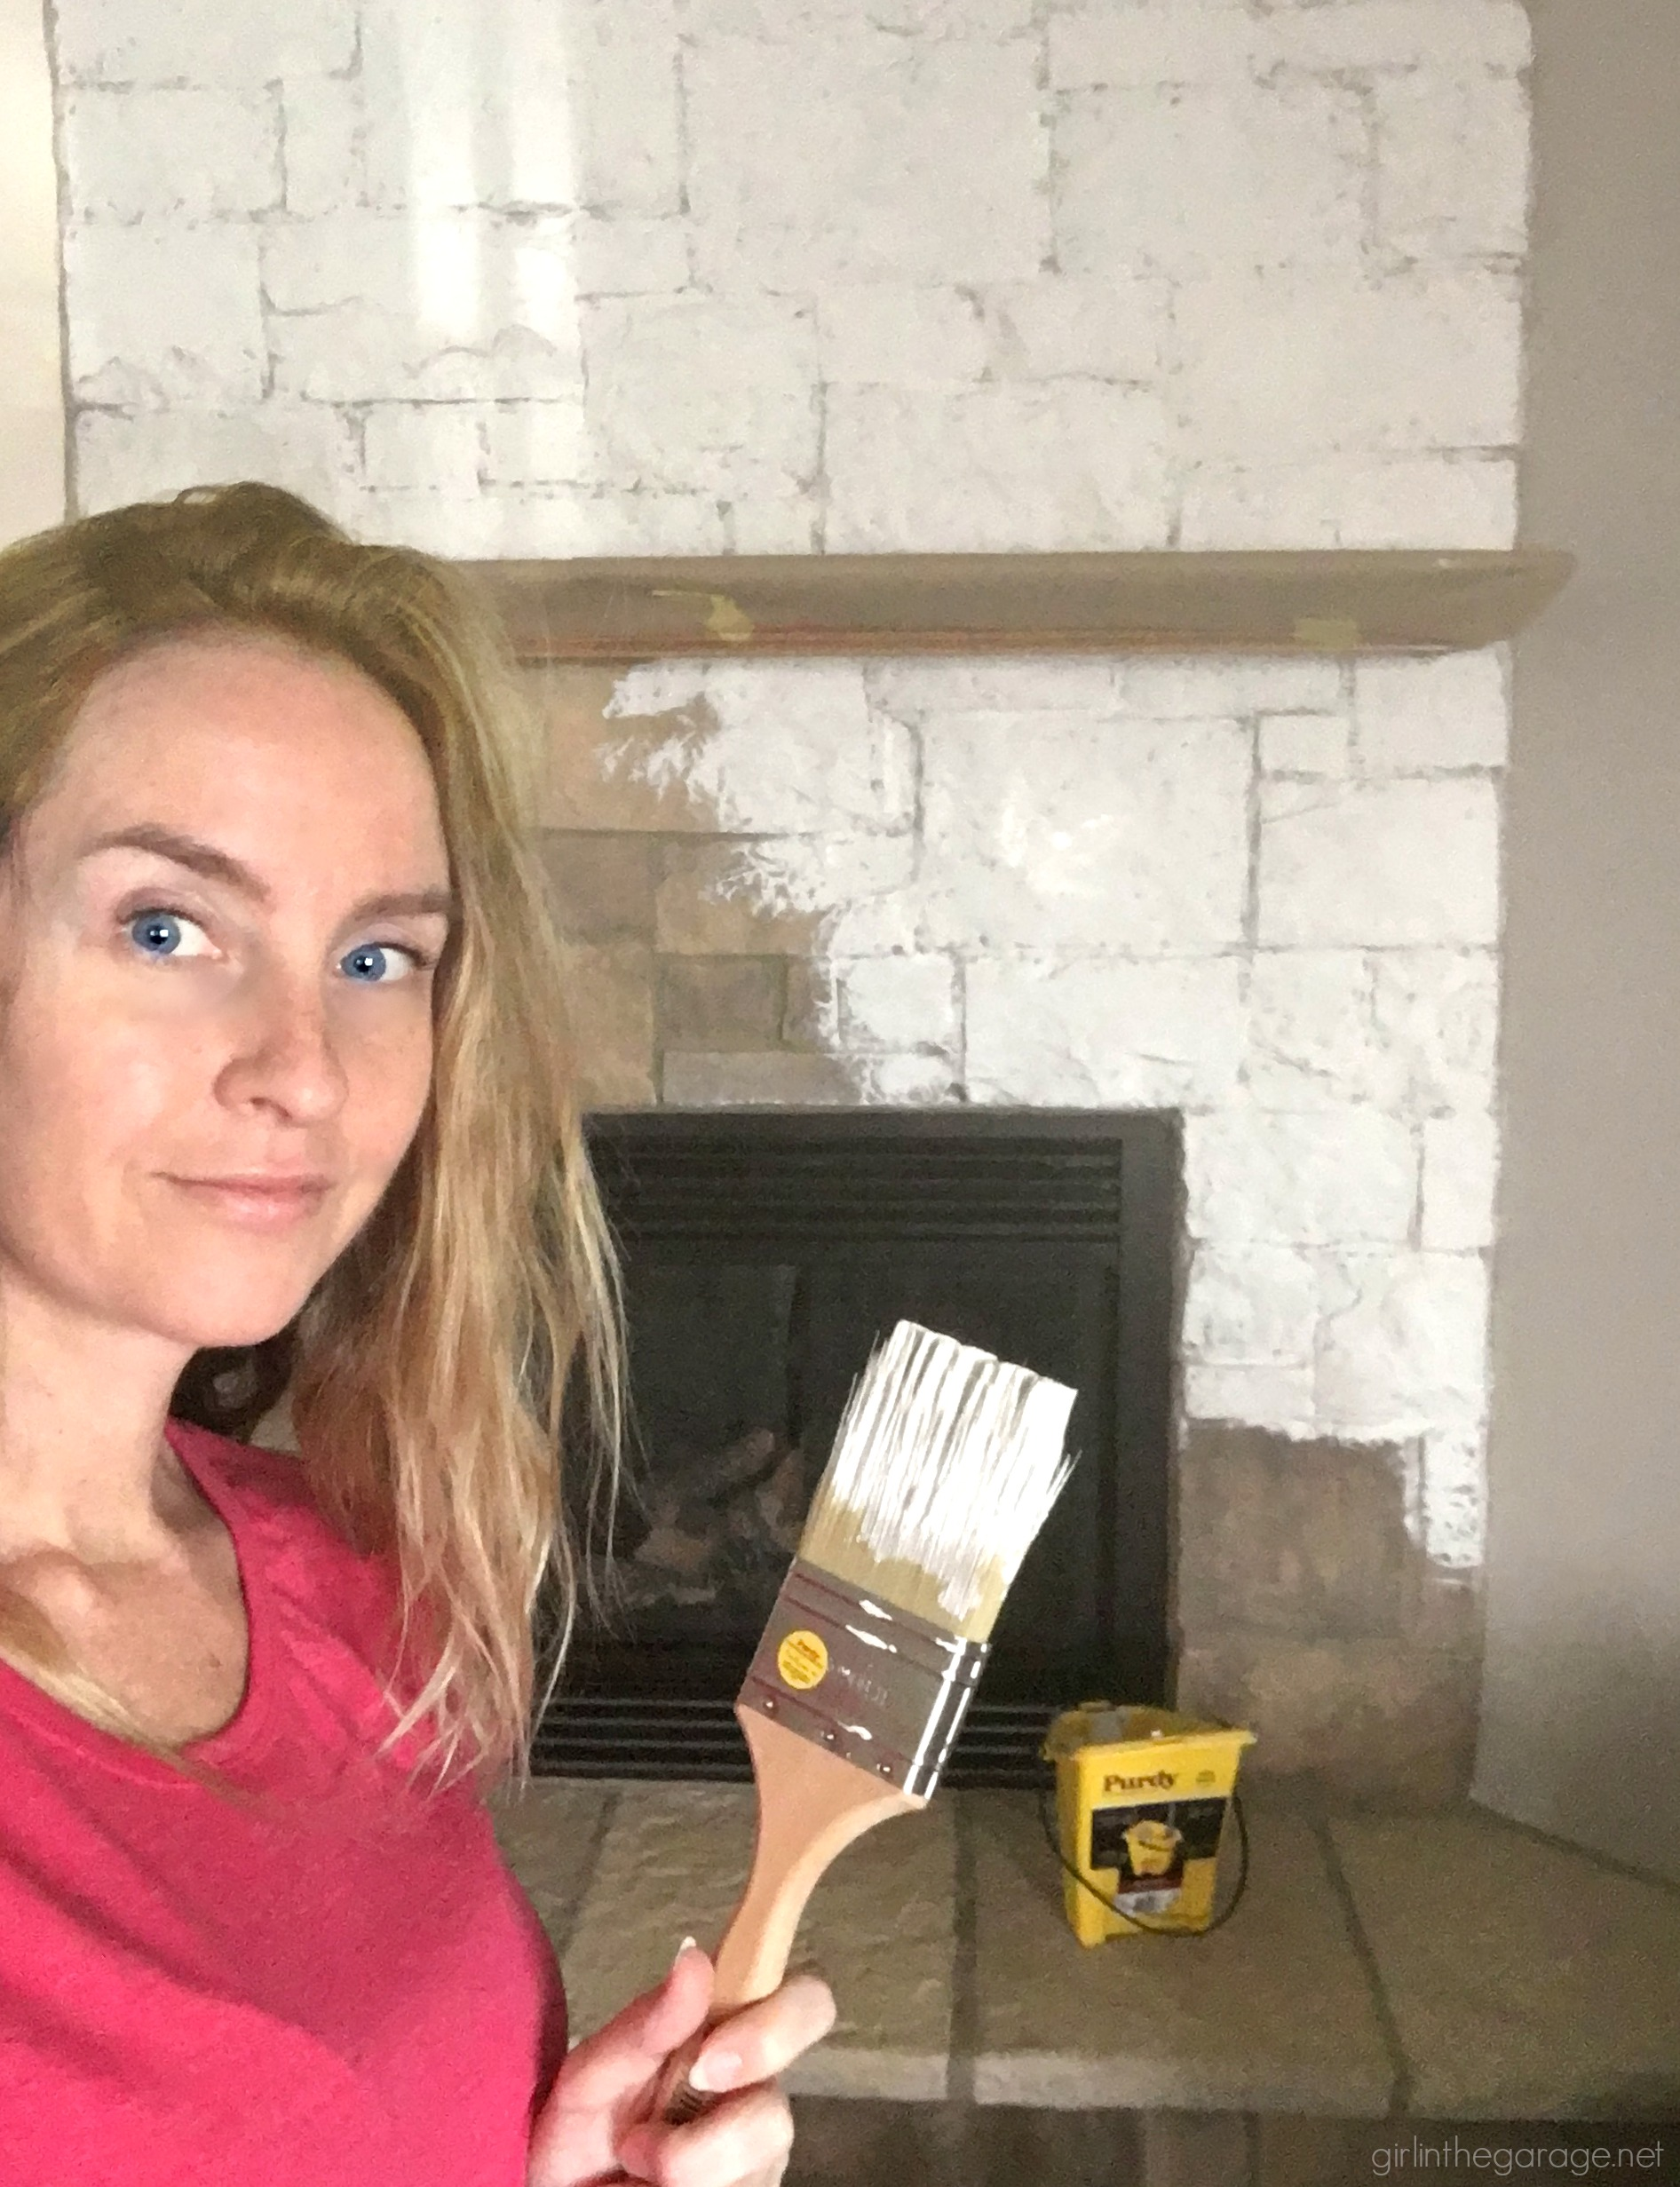 How to easily paint a stone fireplace white with helpful Purdy products meant for rough surfaces. #ad DIY makeover ideas by Girl in the Garage